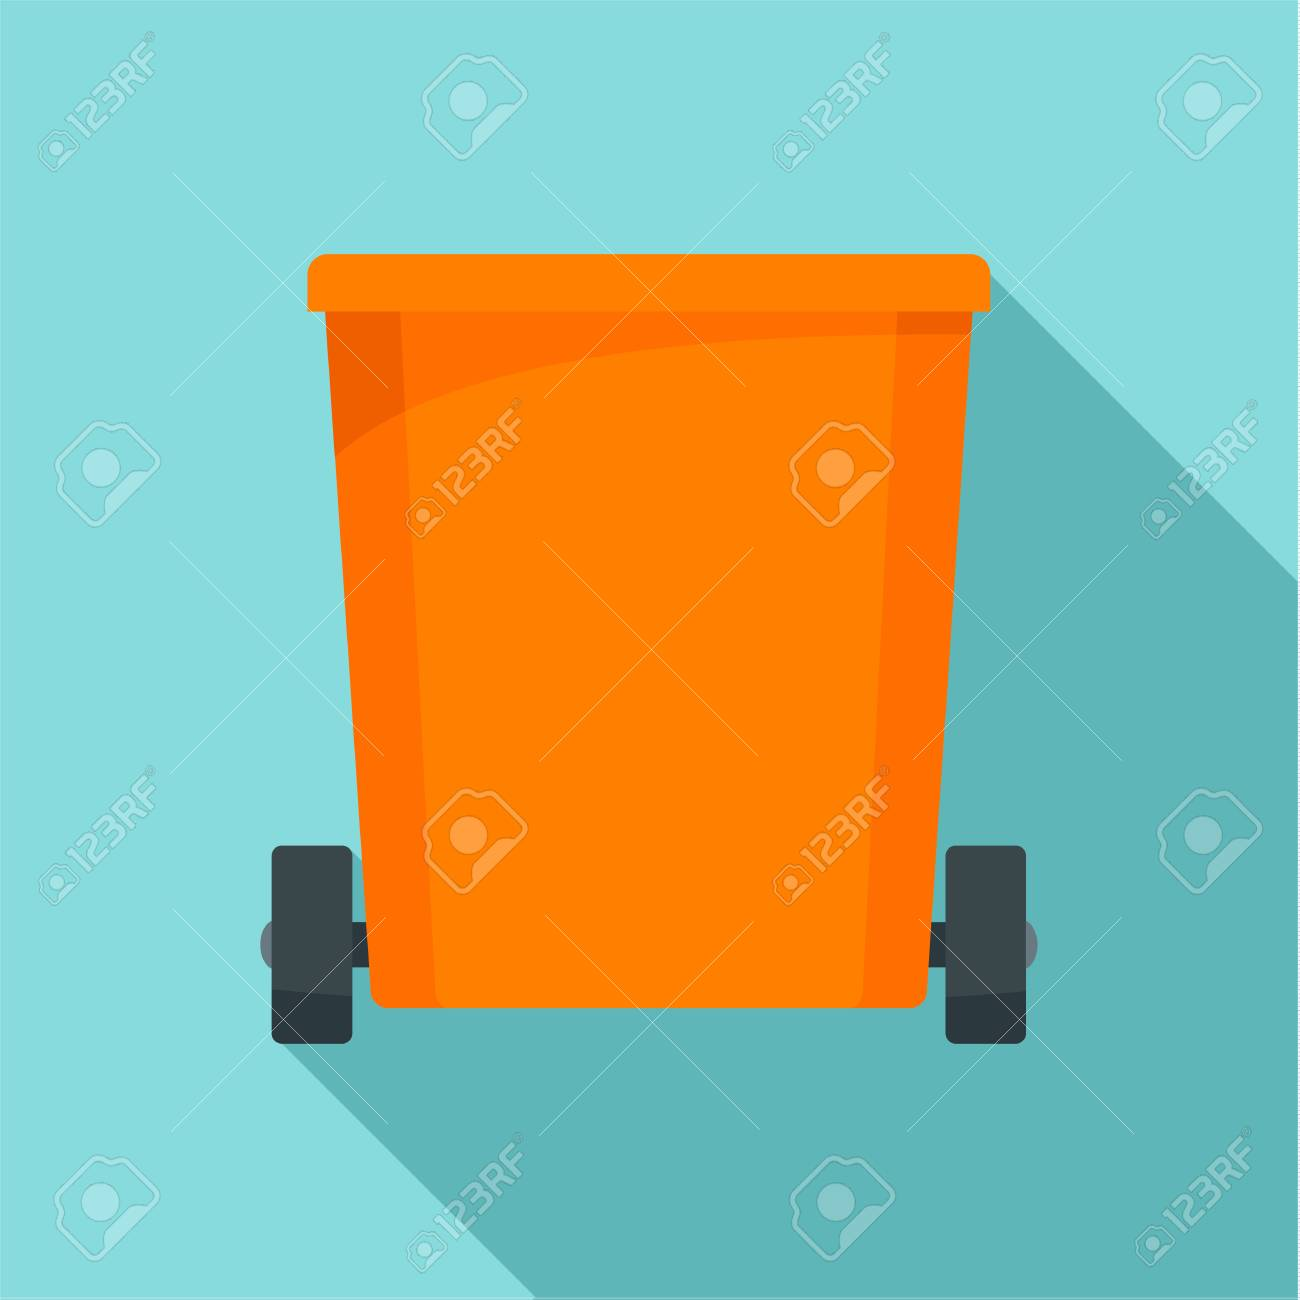 trash can clipart.html